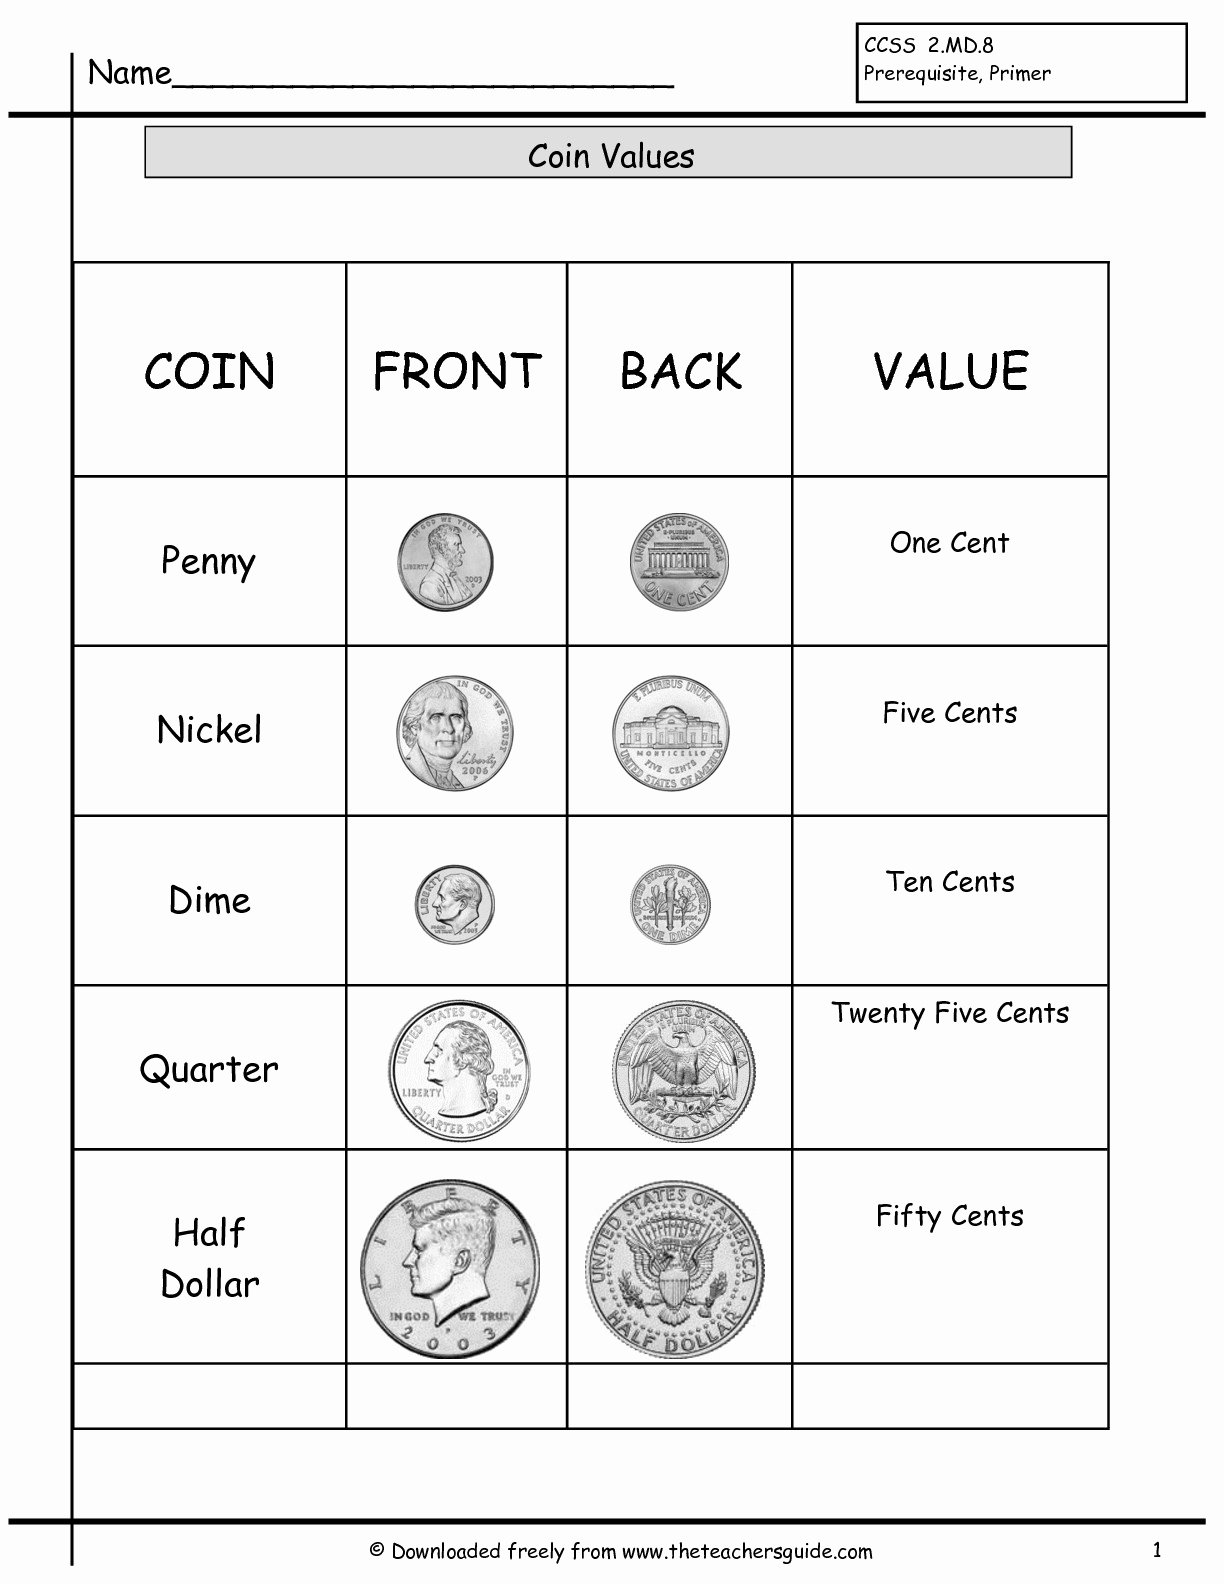 50 Values Of Coins Worksheet